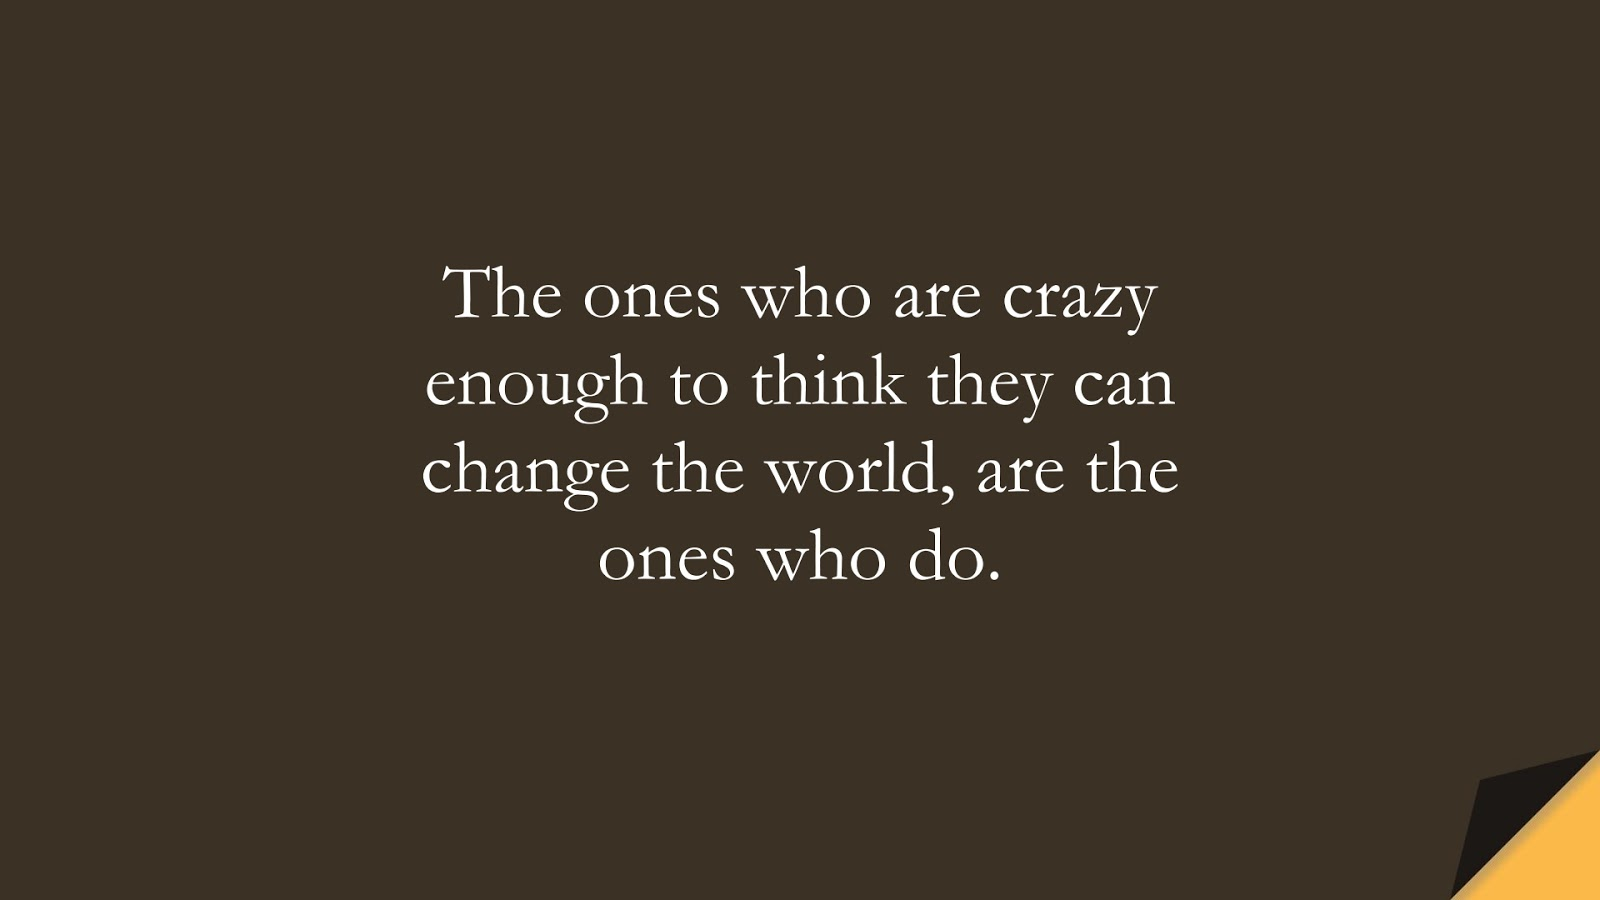 The ones who are crazy enough to think they can change the world, are the ones who do.FALSE